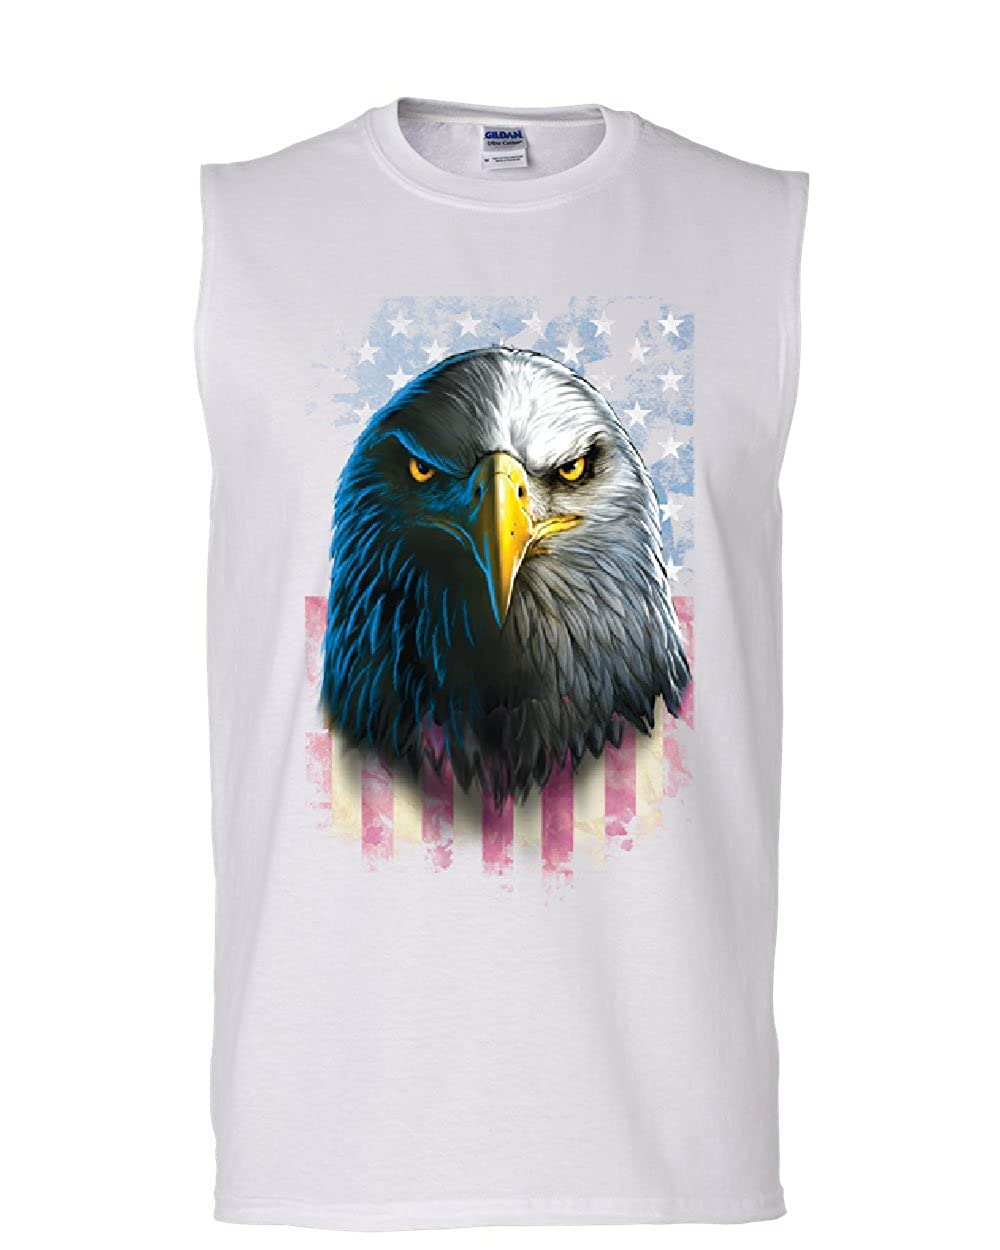 Bald Eagle Stare Muscle Shirt 4th of July USA Stars and Stripes Flag Sleeveless